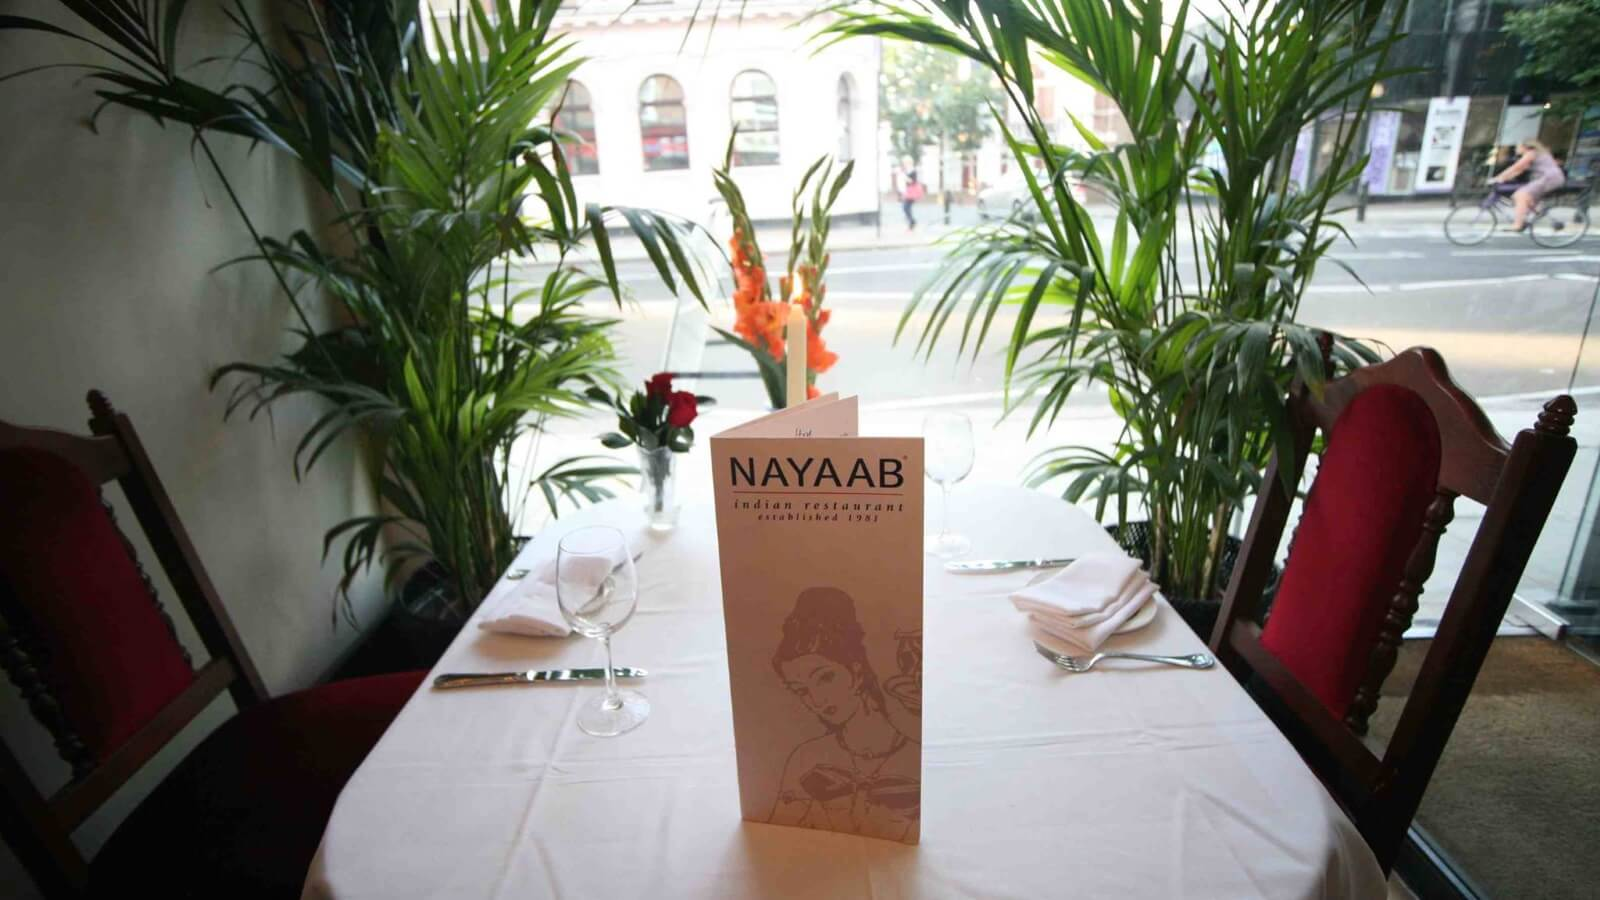 Nayaab Indian Restaurant